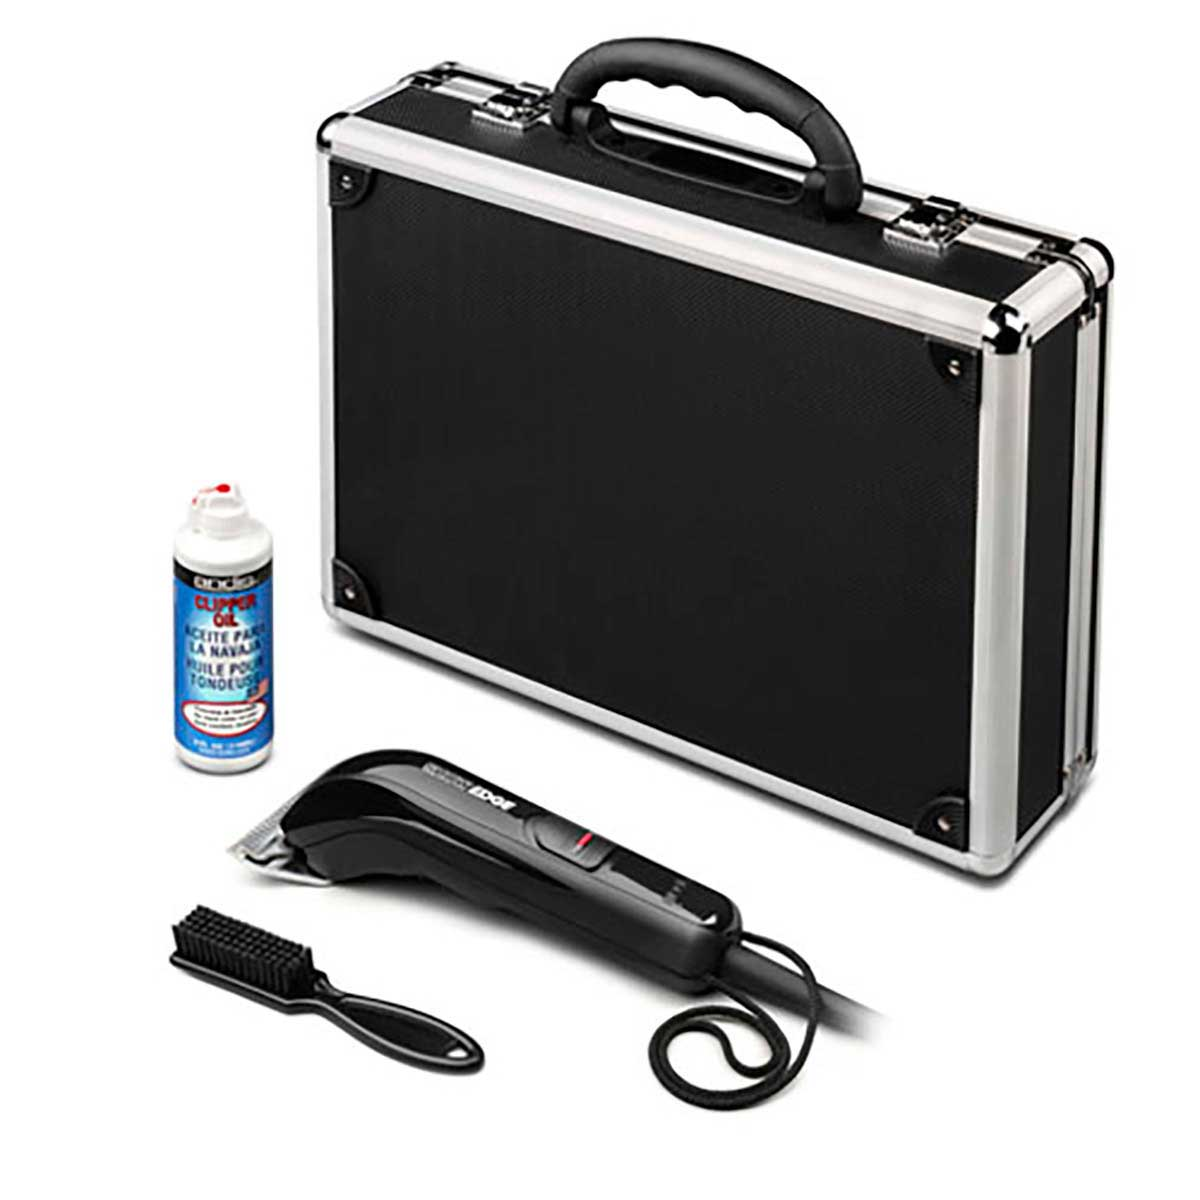 Andis Showedge Large Animal Clipper 2-Speed Kit with Clipper Oil, Carrying Case and Clipper Brush